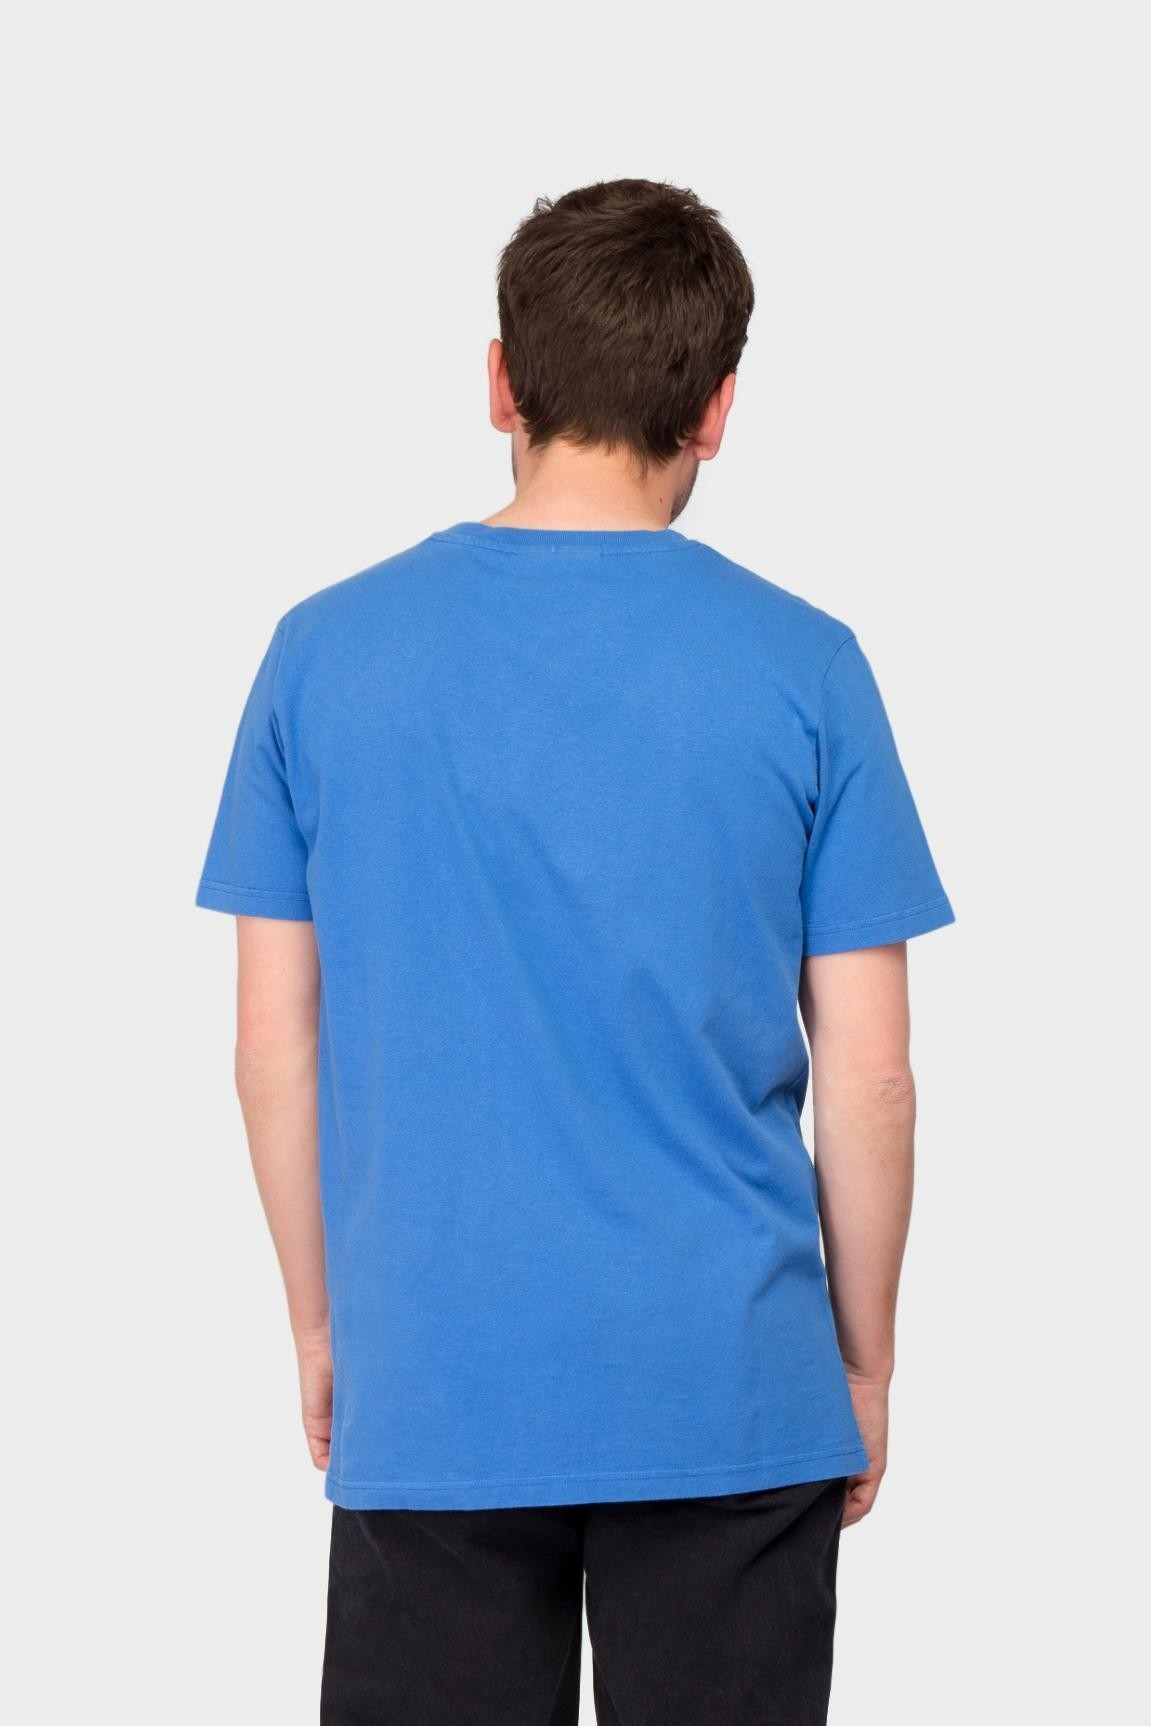 Han Kjøbenhavn Artwork Tee in Blue